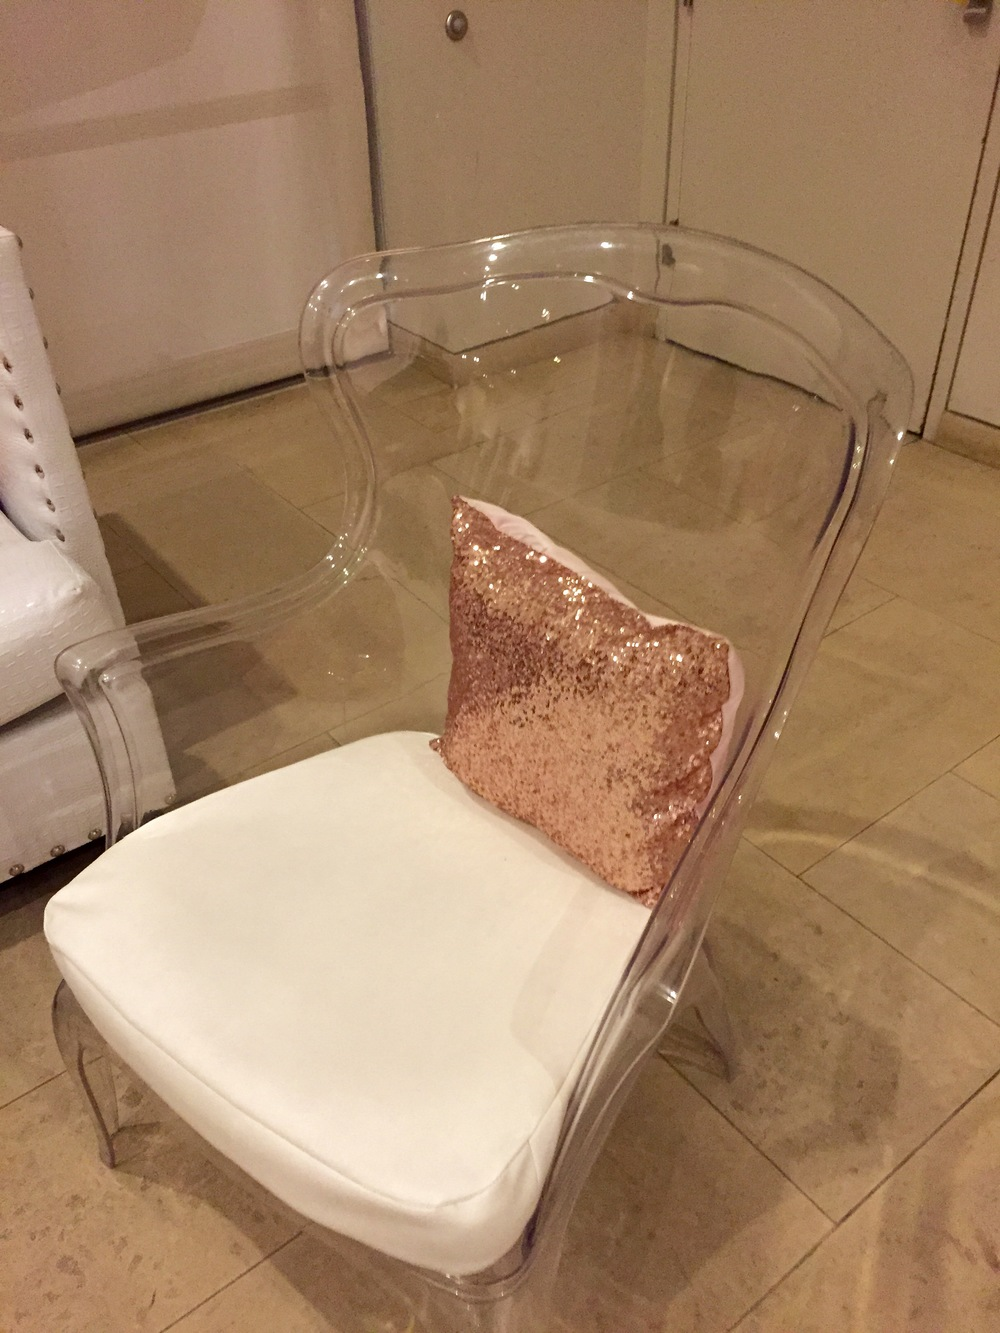 The Chair I need for the FAB PAD